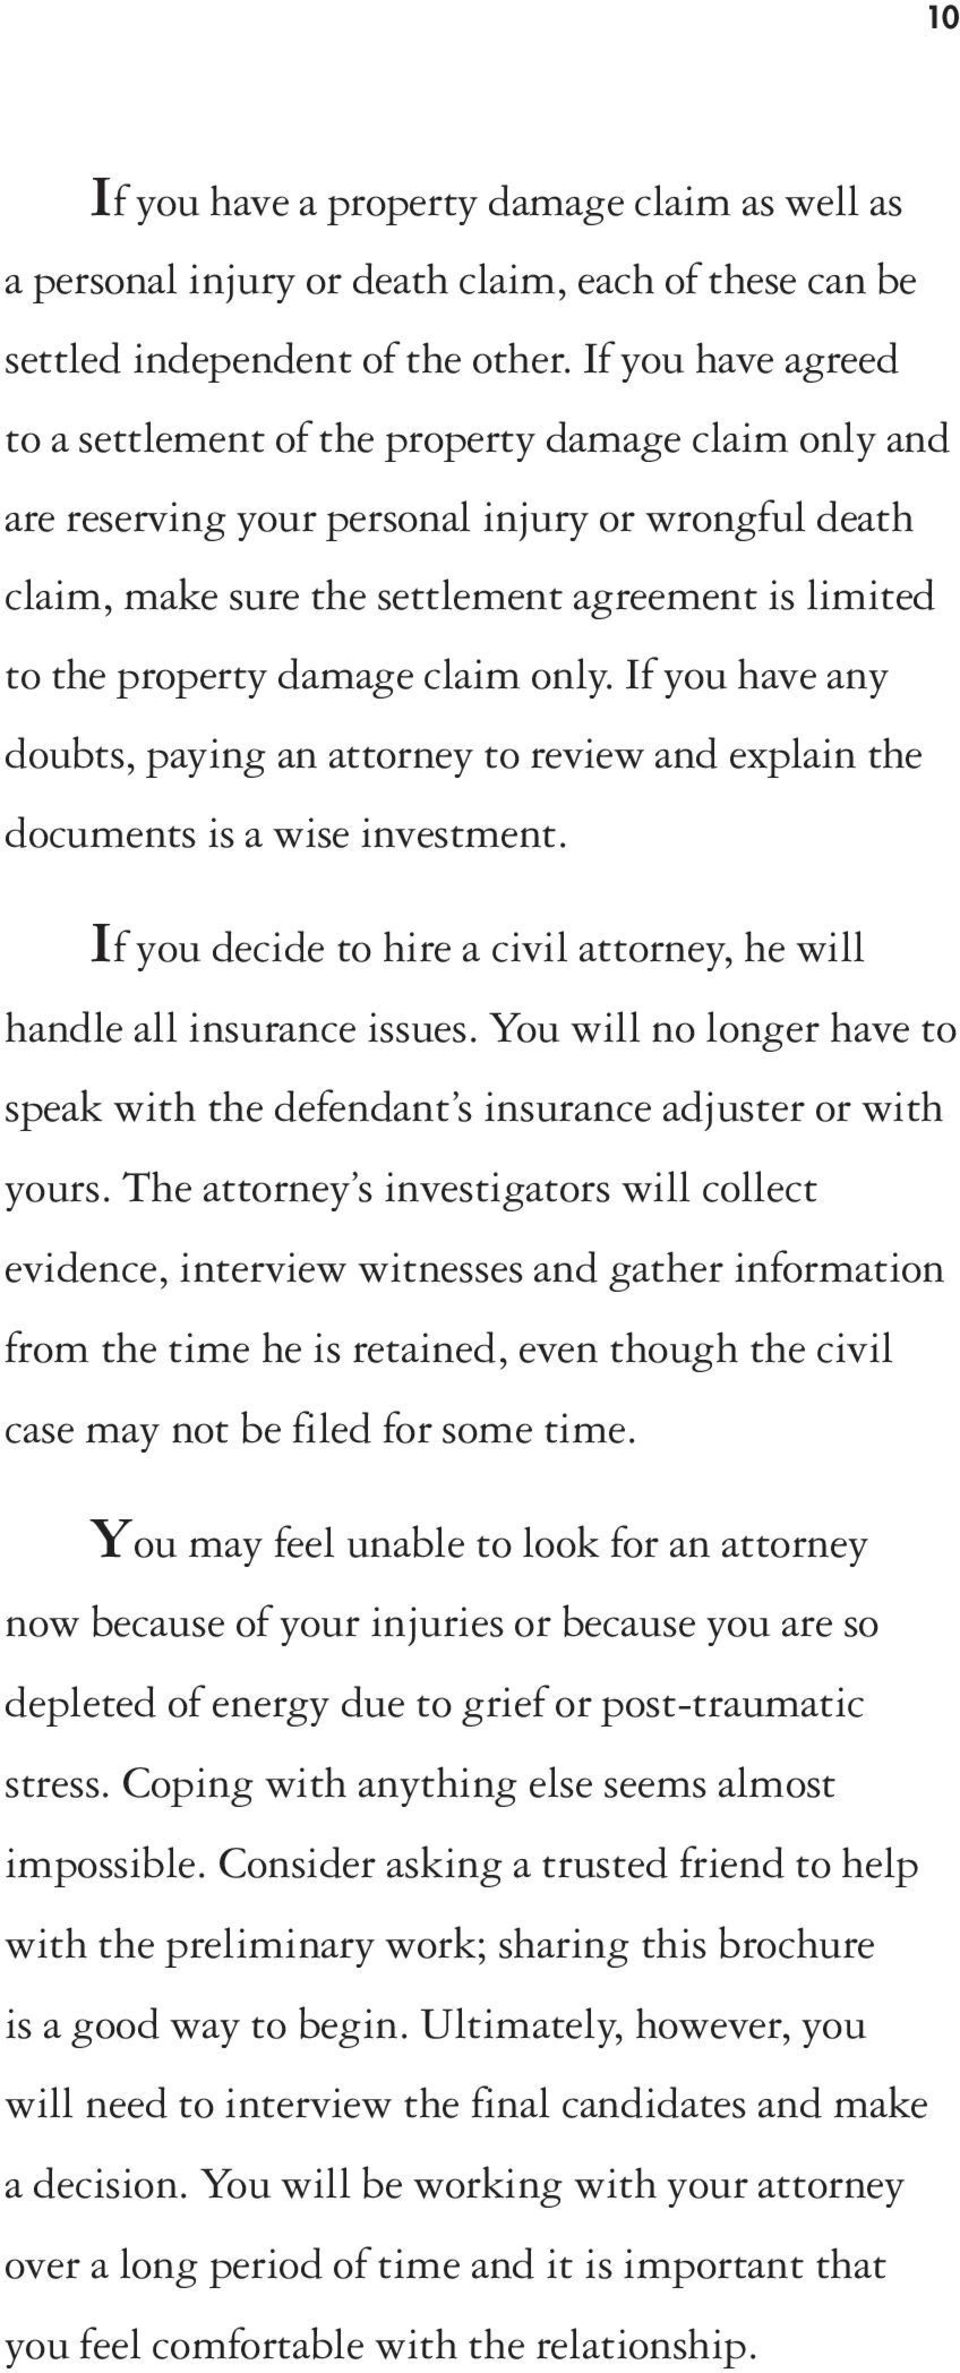 damage claim only. If you have any doubts, paying an attorney to review and explain the documents is a wise investment. If you decide to hire a civil attorney, he will handle all insurance issues.